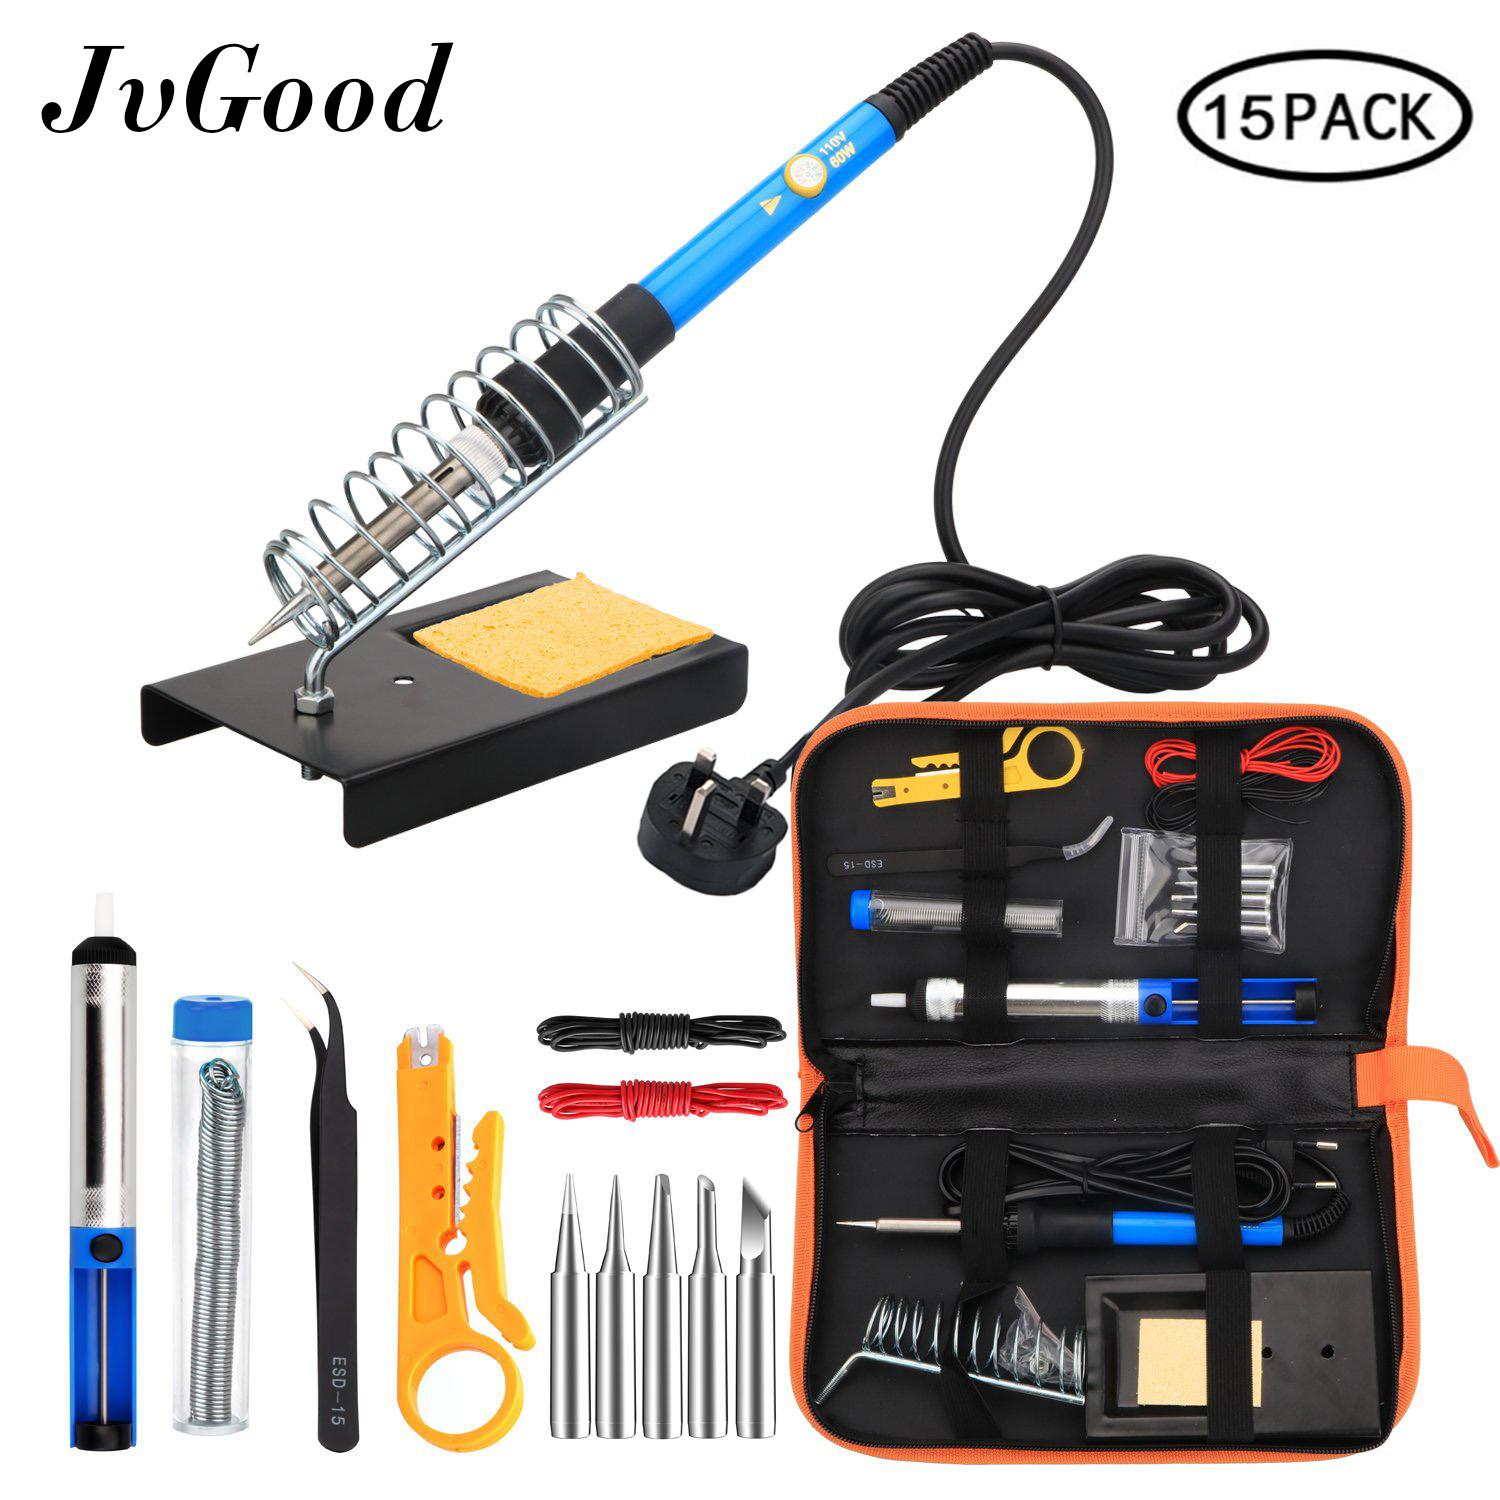 JvGood Soldering Iron Kit Electronics 15 Pieces Set 60W Adjustable Temperature Welding Tool, 5pcs Soldering Tips, Desoldering Pump, Soldering Iron Stand, Tweezers ( UK Plug)